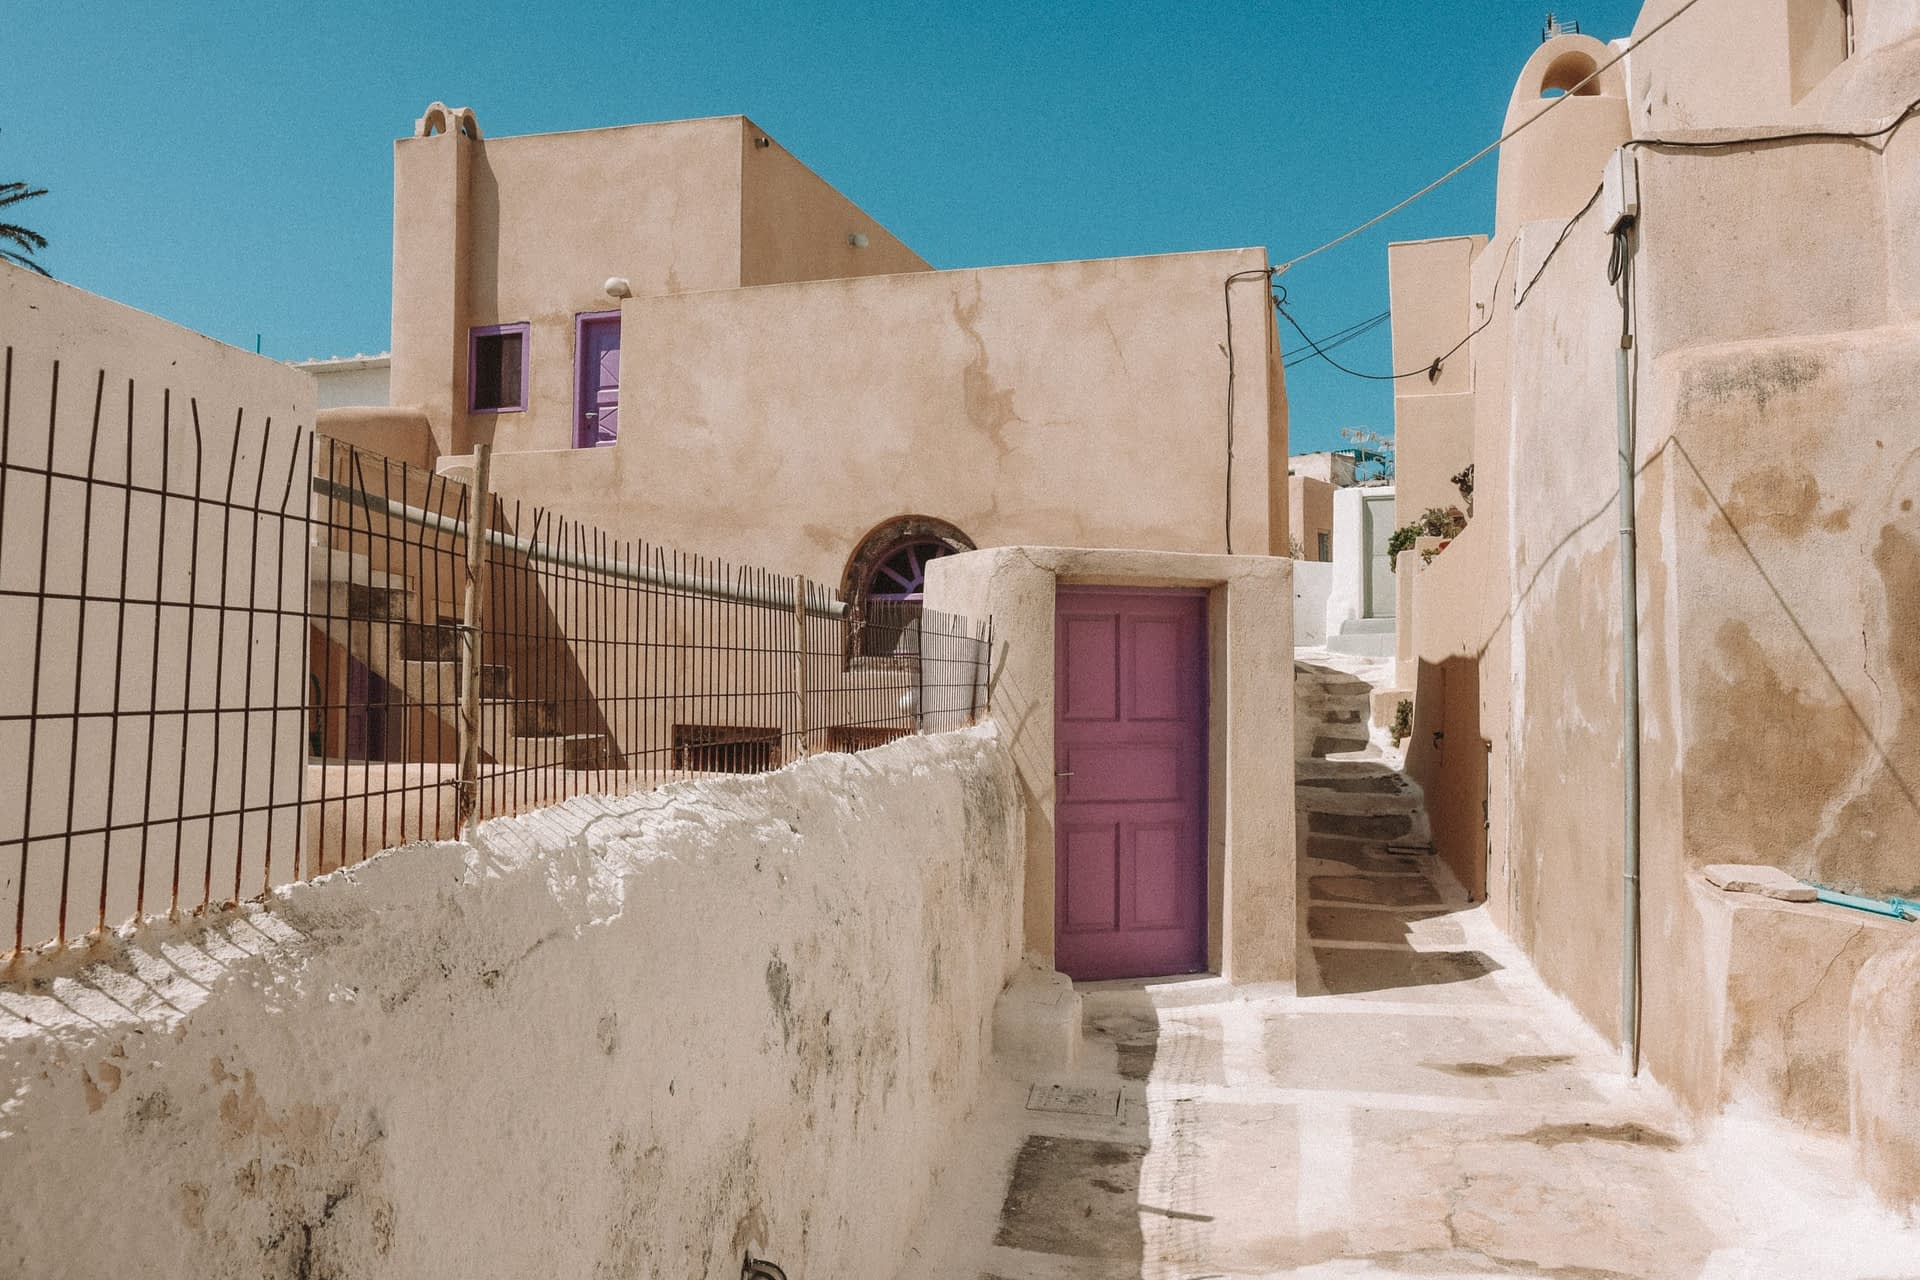 Village alleyway in Emporio with peach washed houses and purple doors. Things to do in Santorini